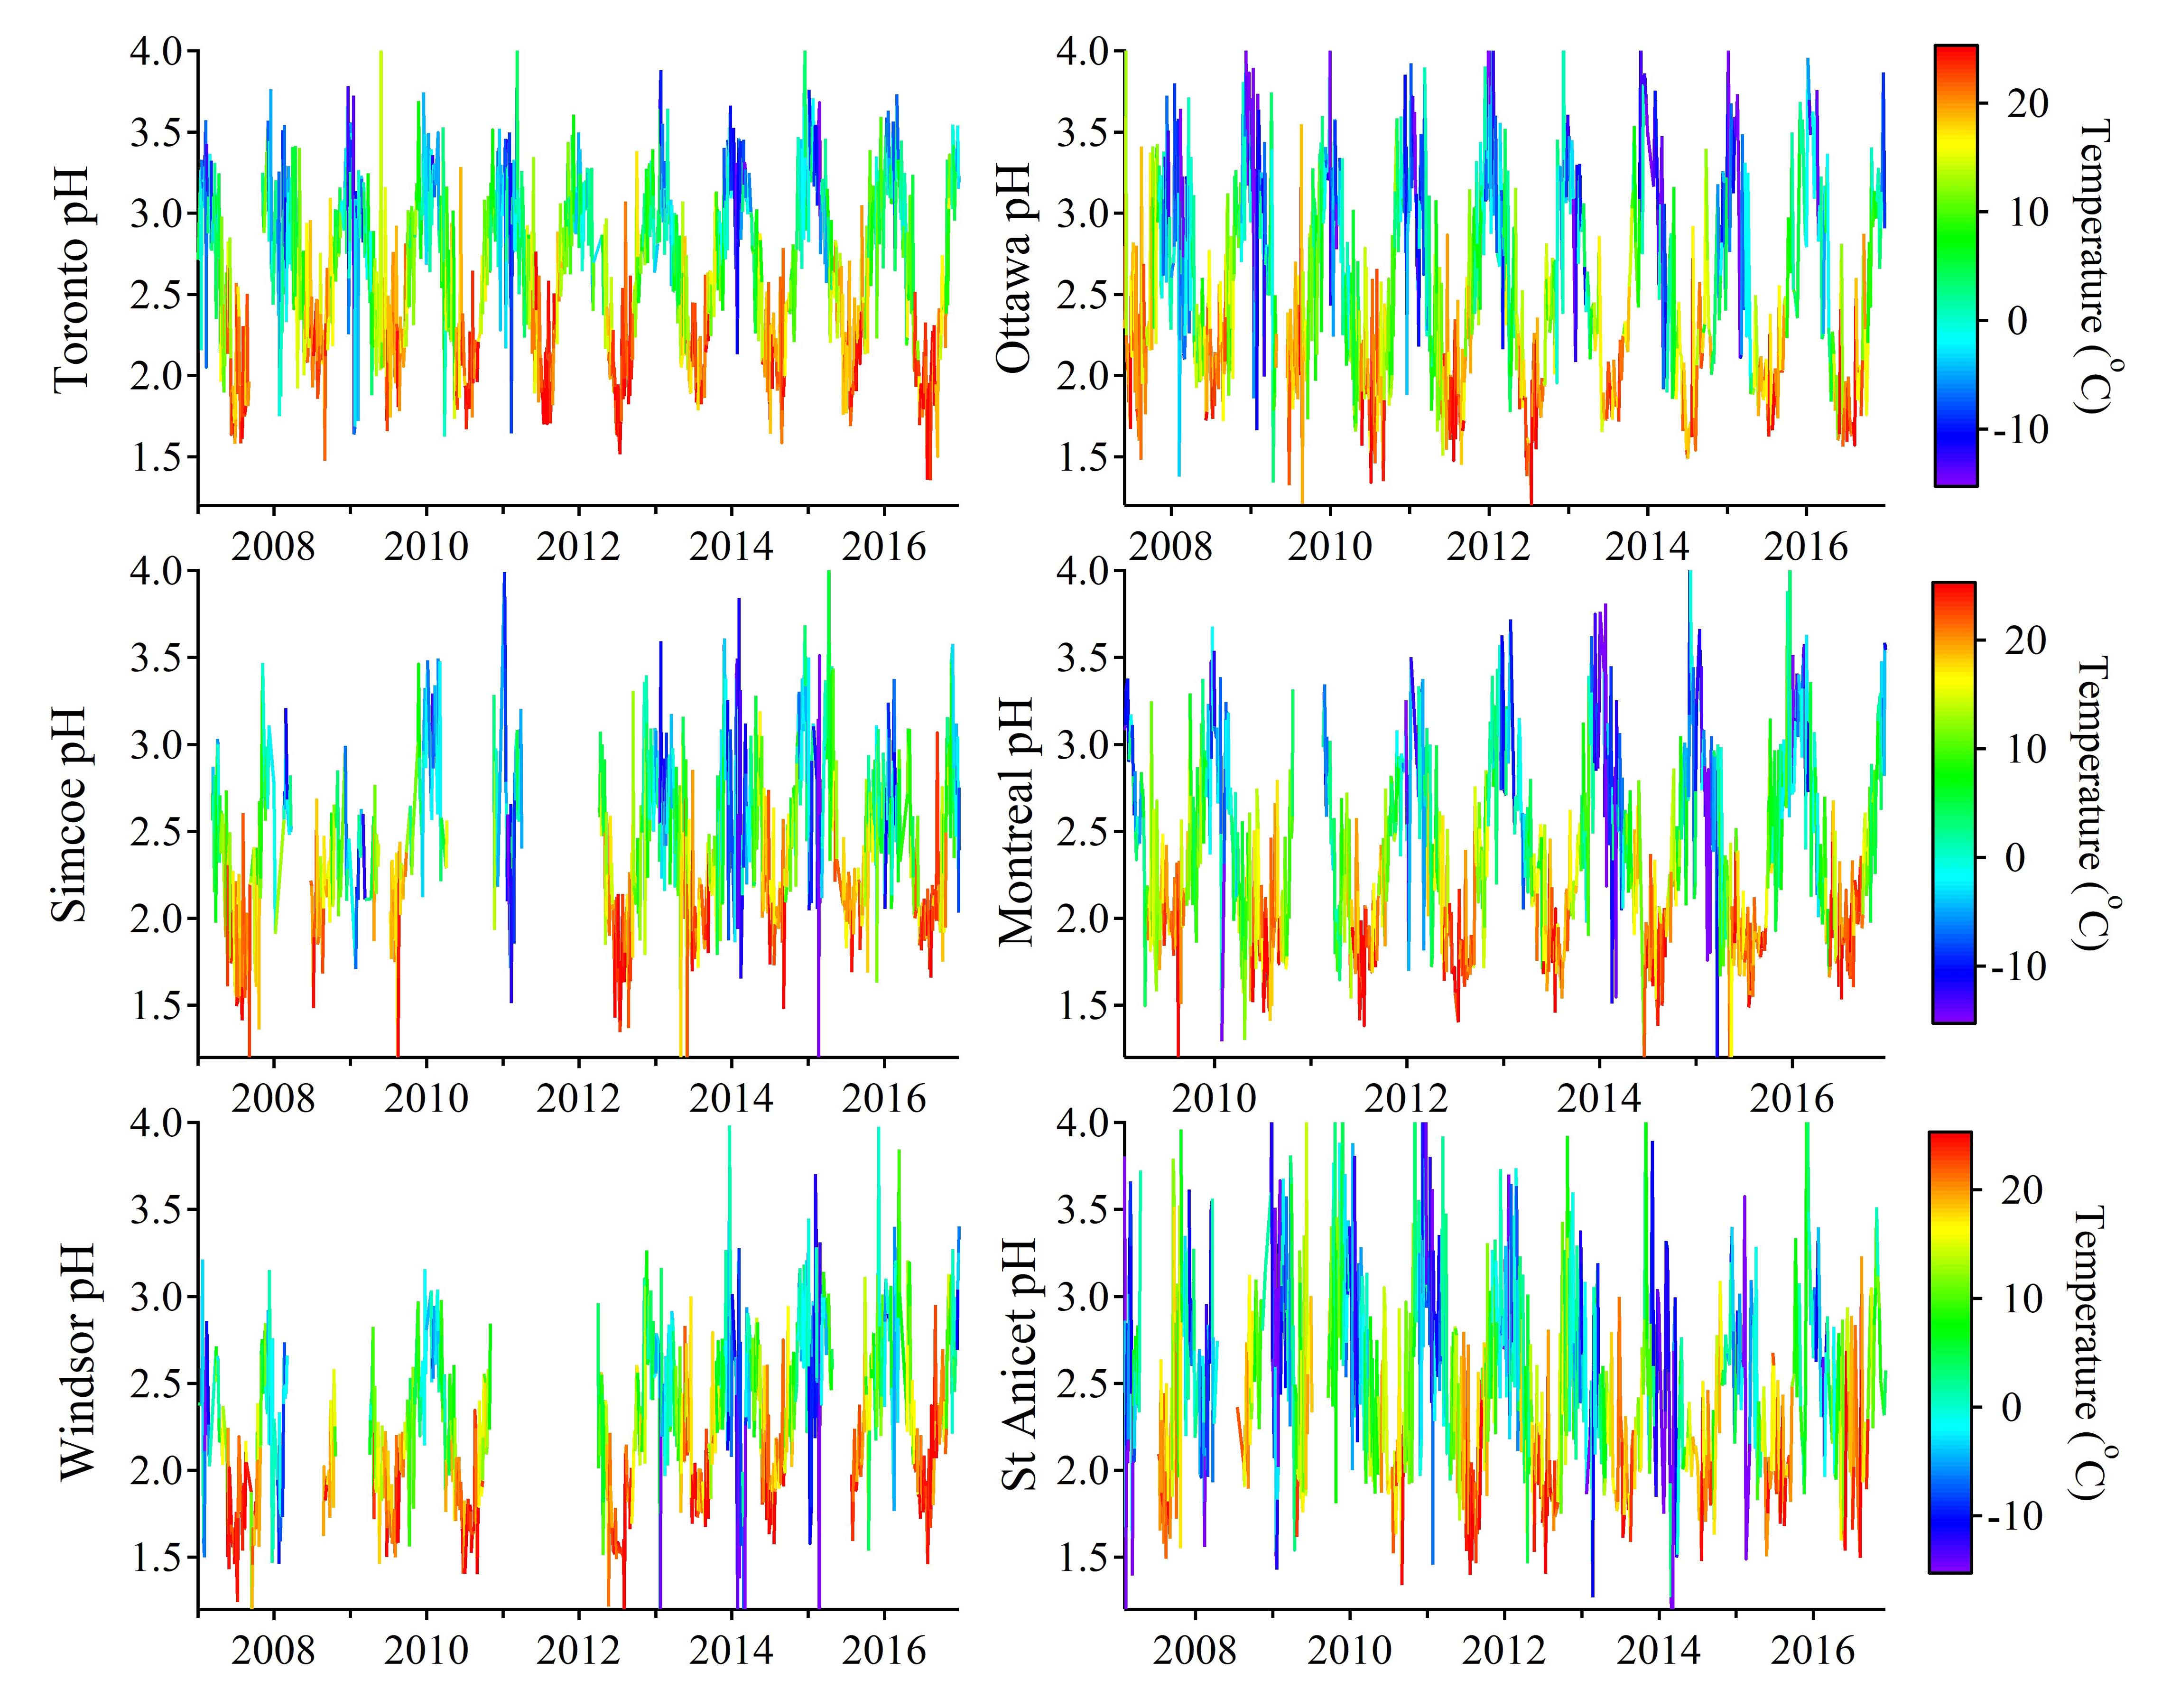 ACP - The sensitivity of PM2 5 acidity to meteorological parameters